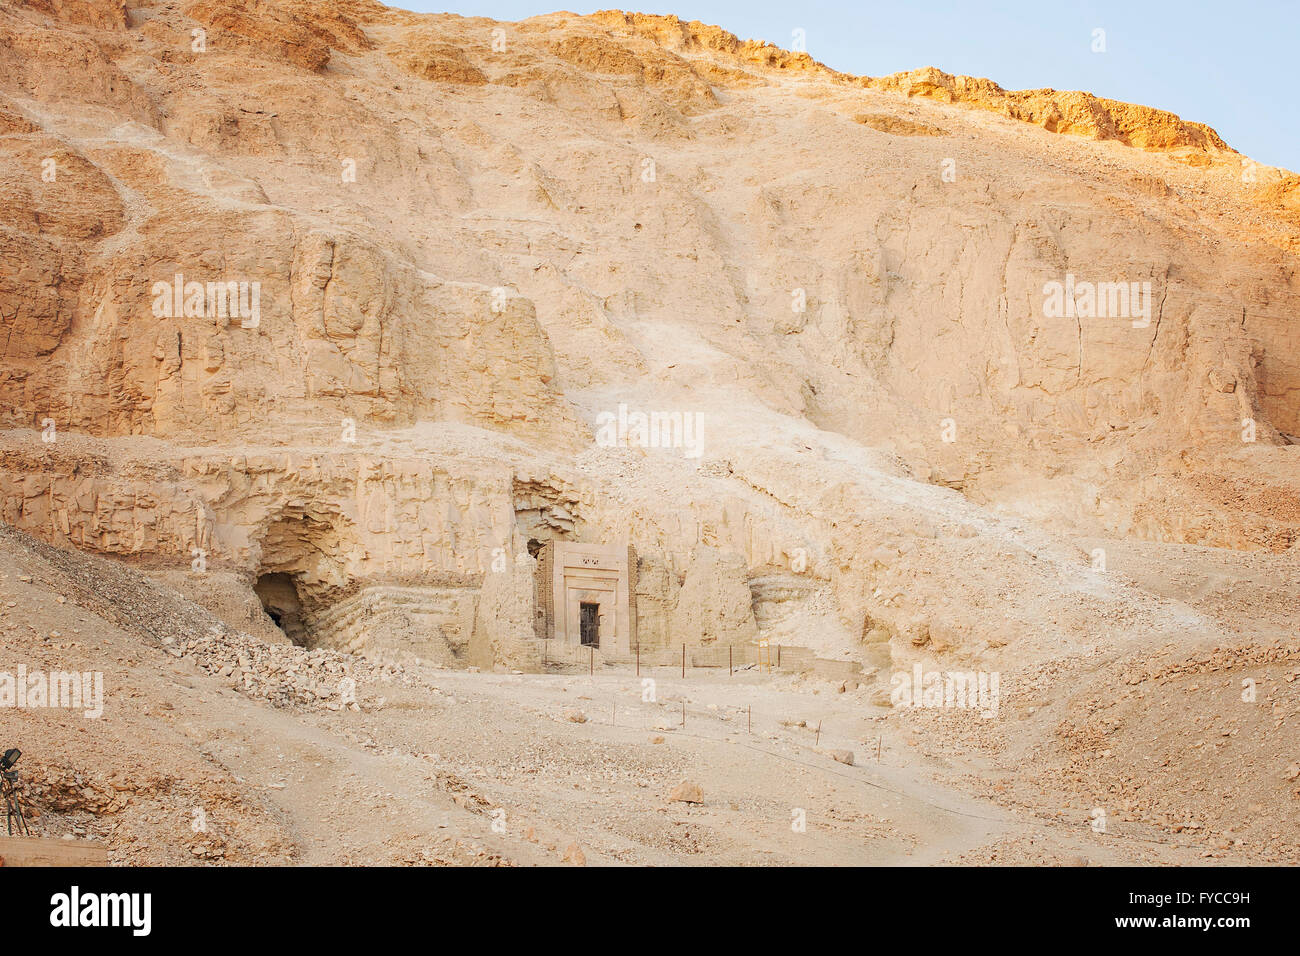 Image of a temple entrance in the side of the rock. Valley of the Queens, Egypt. - Stock Image